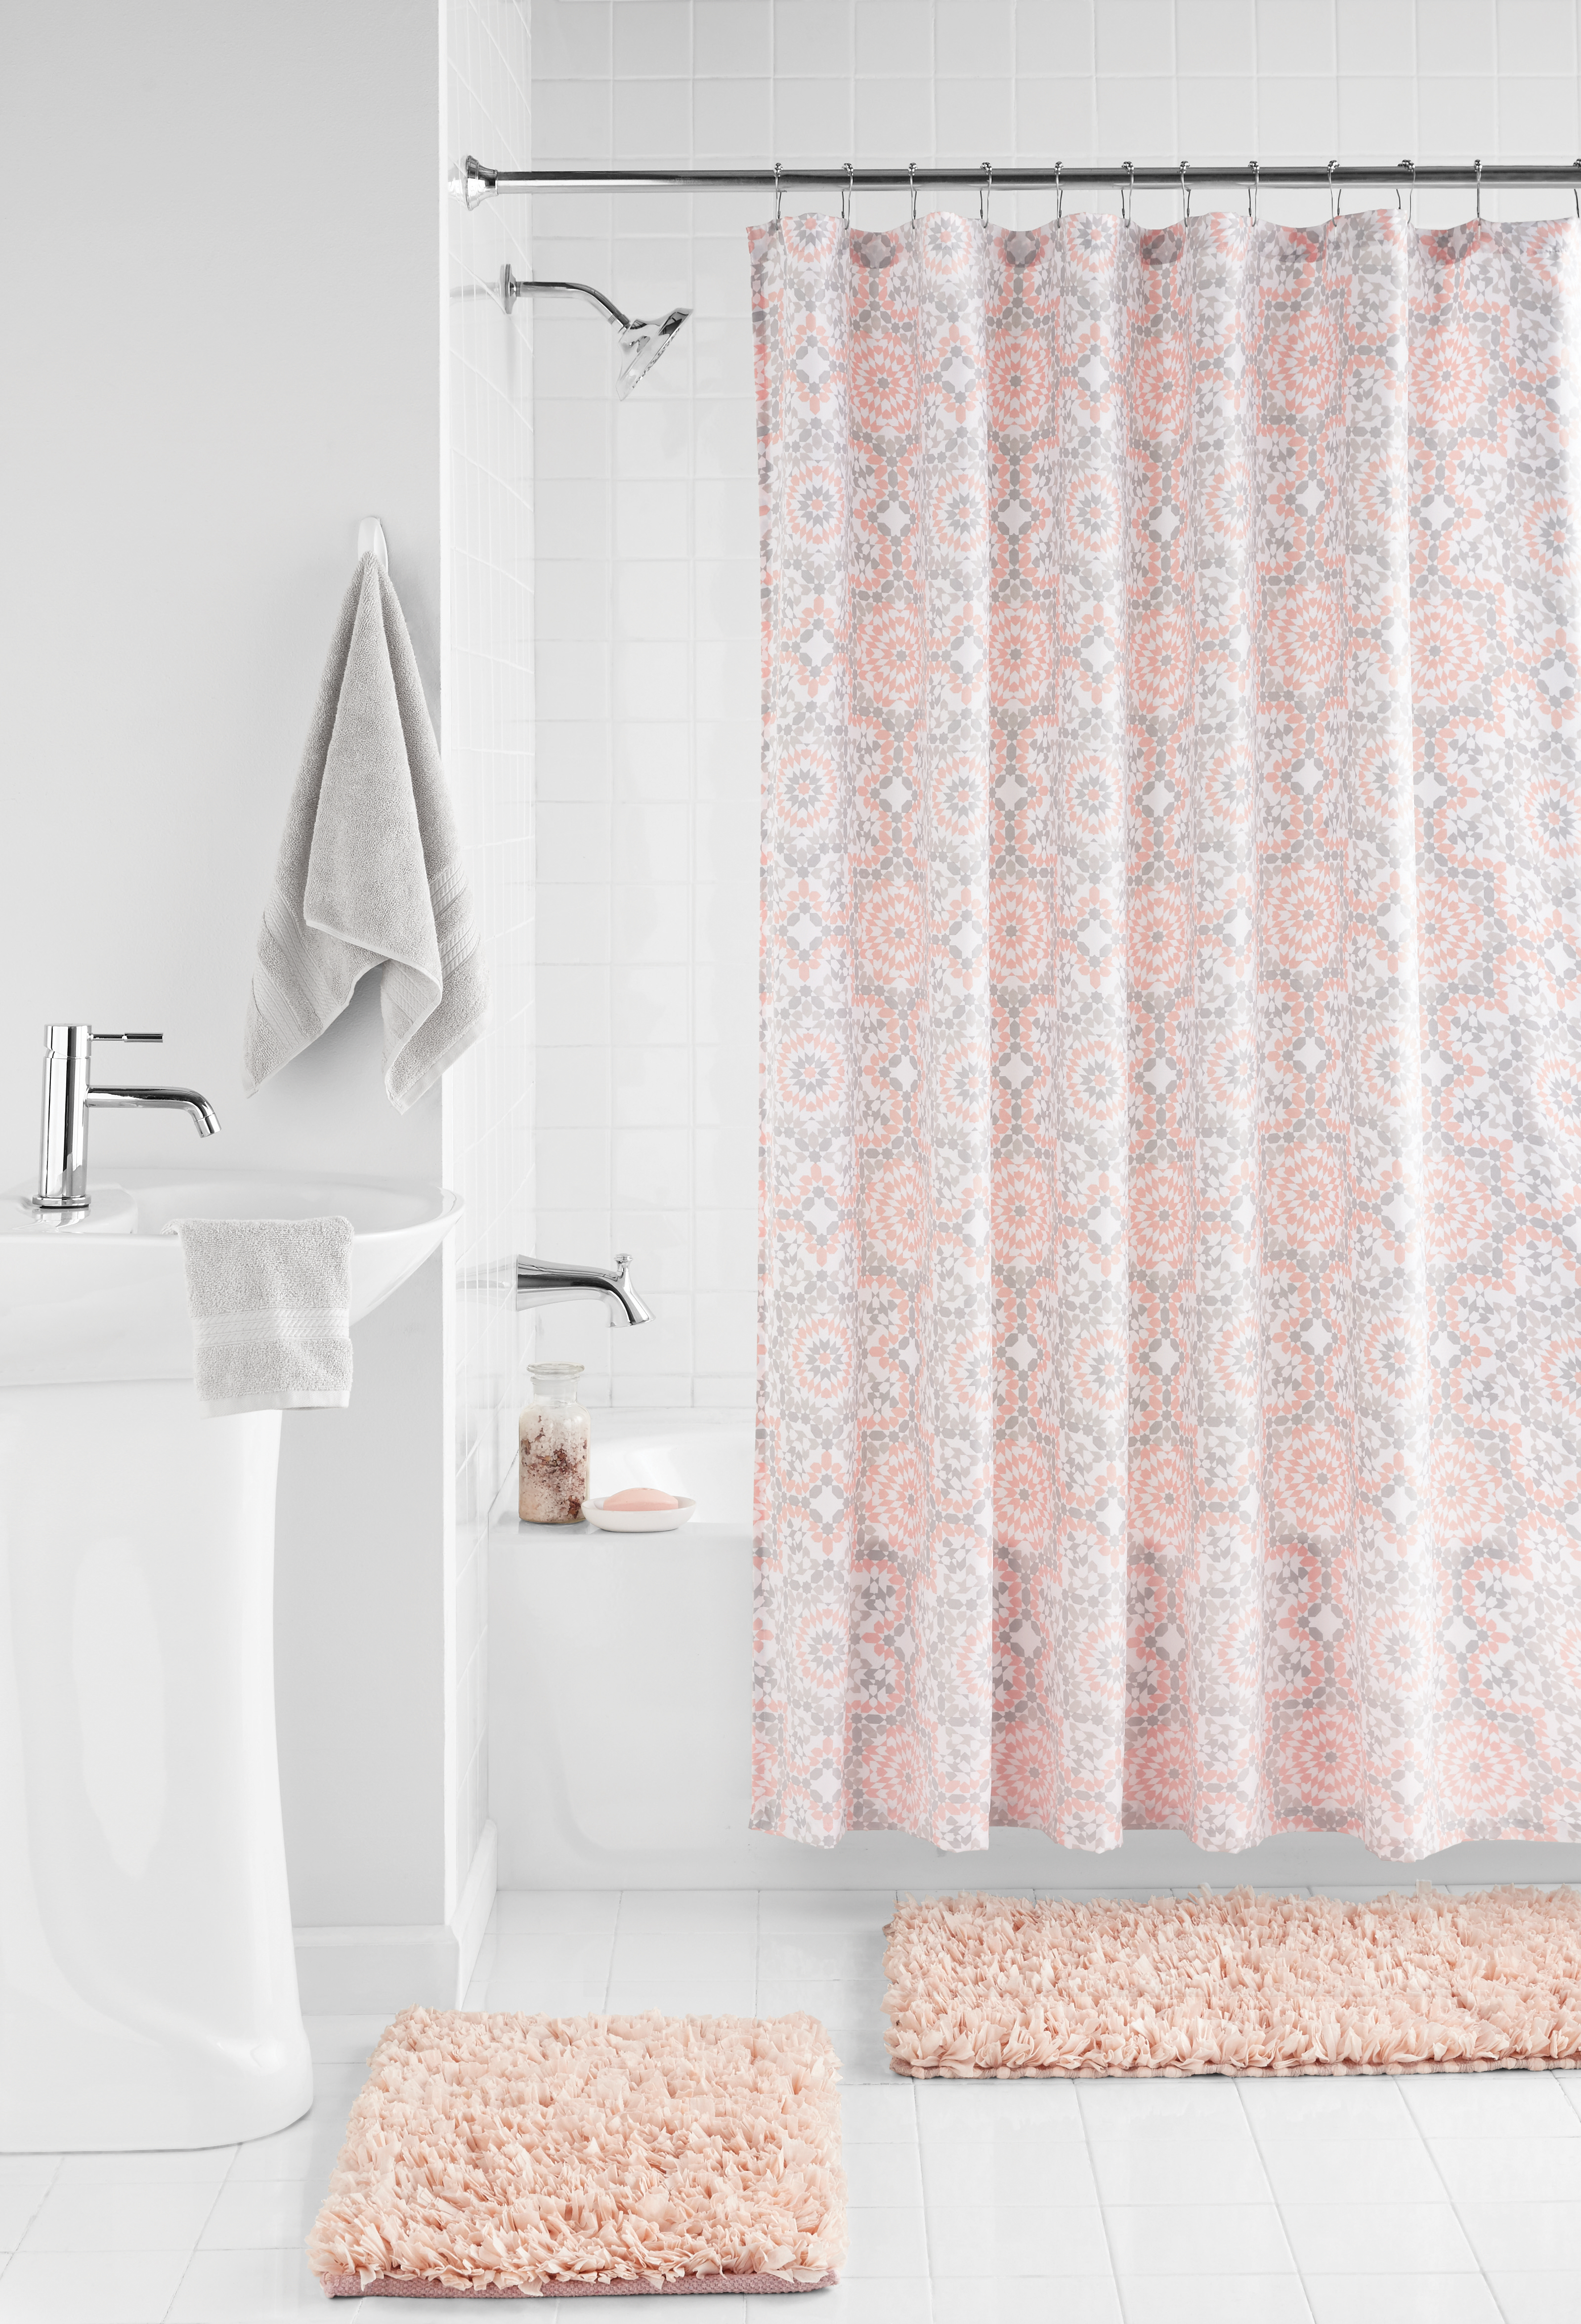 Mainstays Shag Rug and Shower Curtain 15-Piece Bath Set, Blush